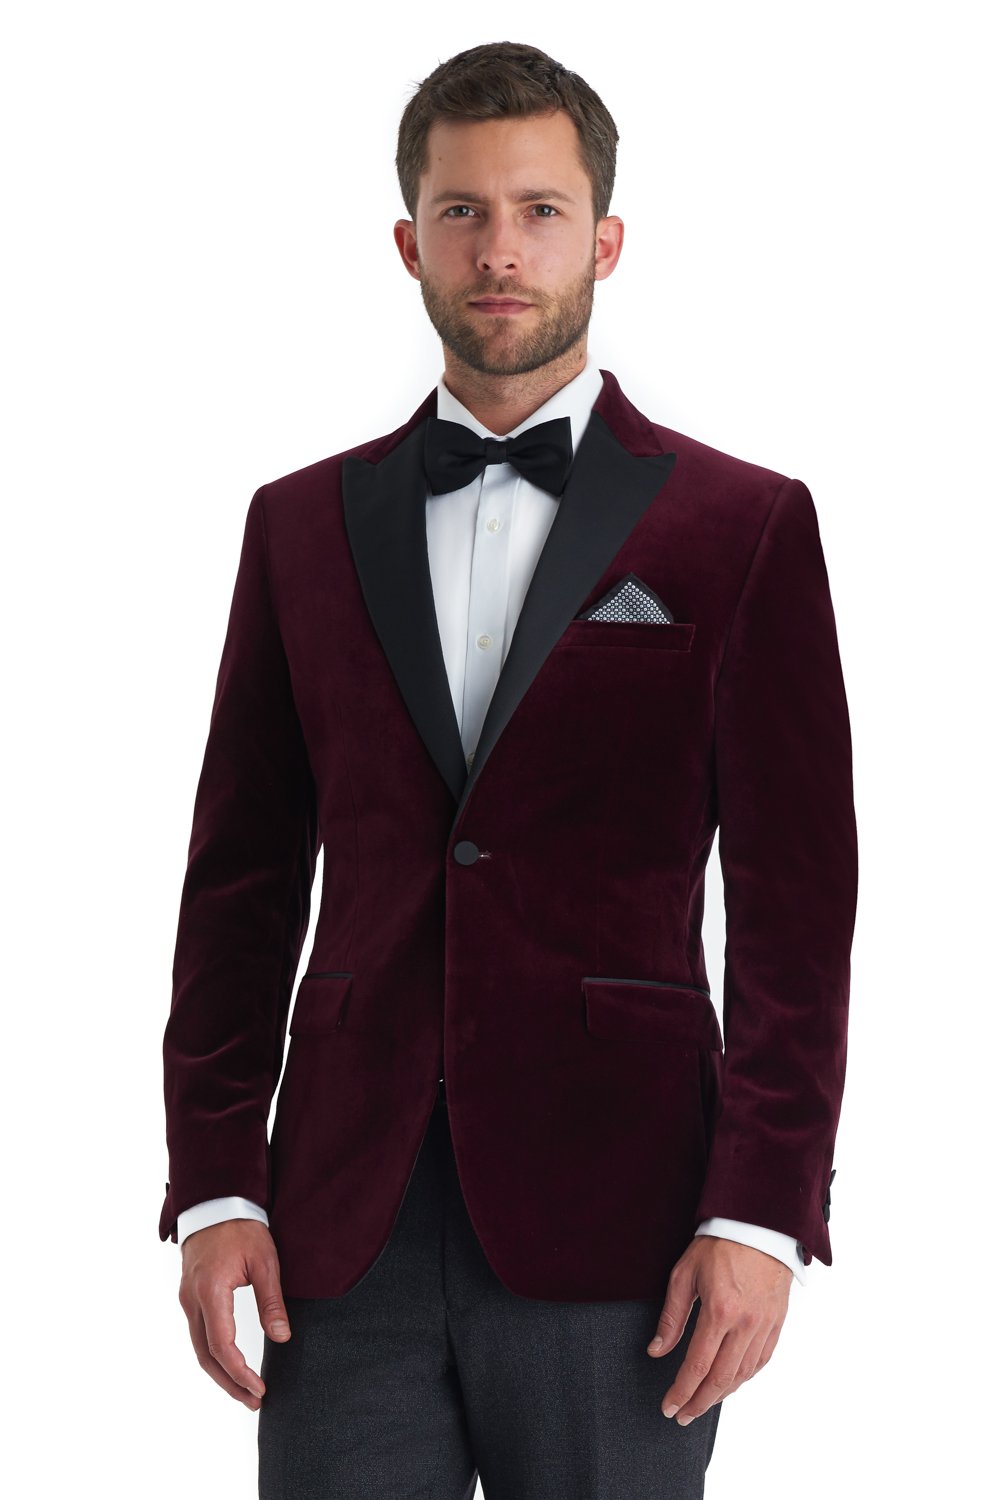 Moss 1851 Mens Wine Red Suit Jacket Tailored Fit Burgundy Velvet ...